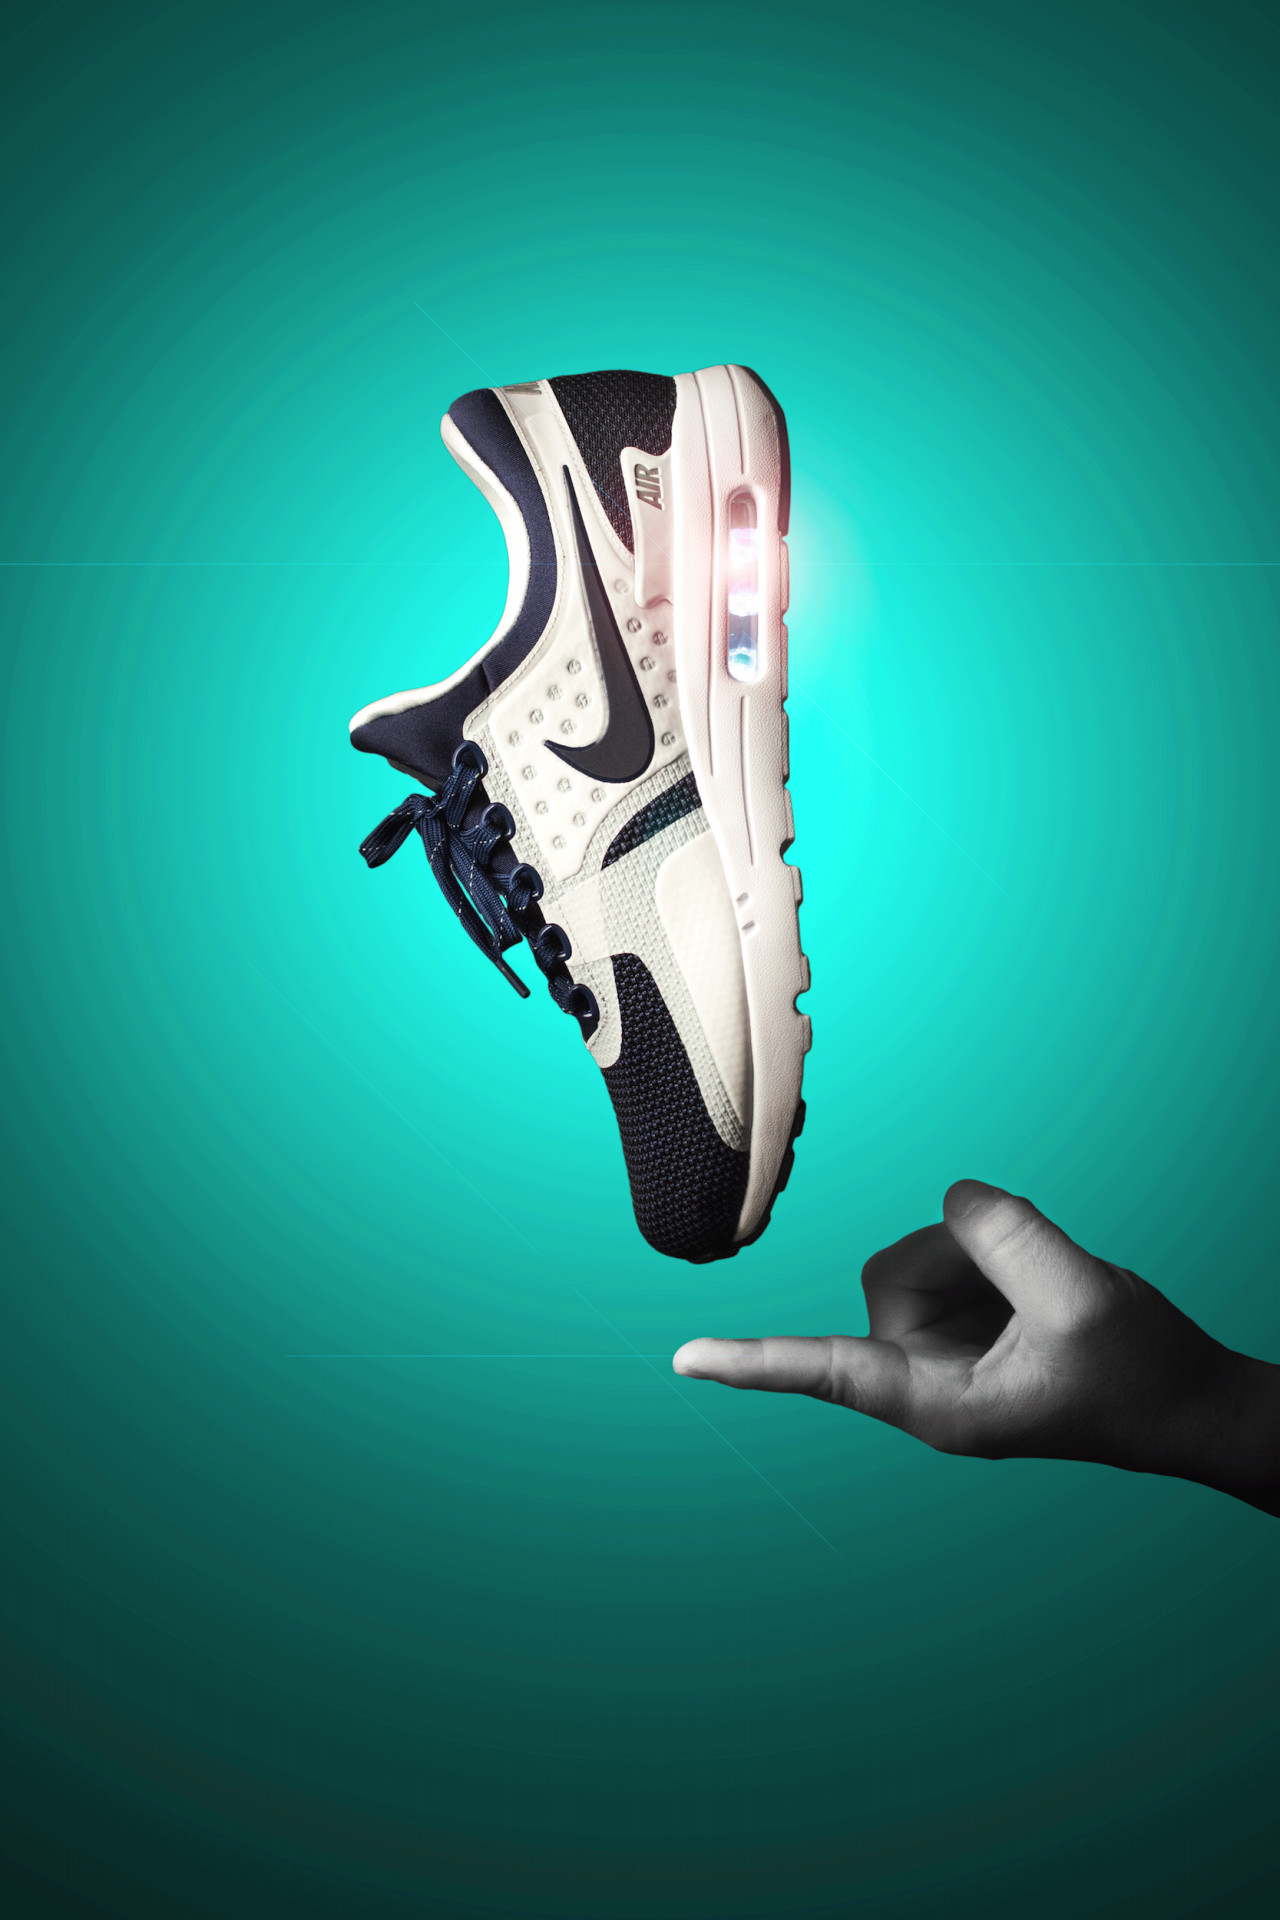 1280x1920 Vagrant Sneaker - Nike Air Max Zero wallpaper for your iPhone or.